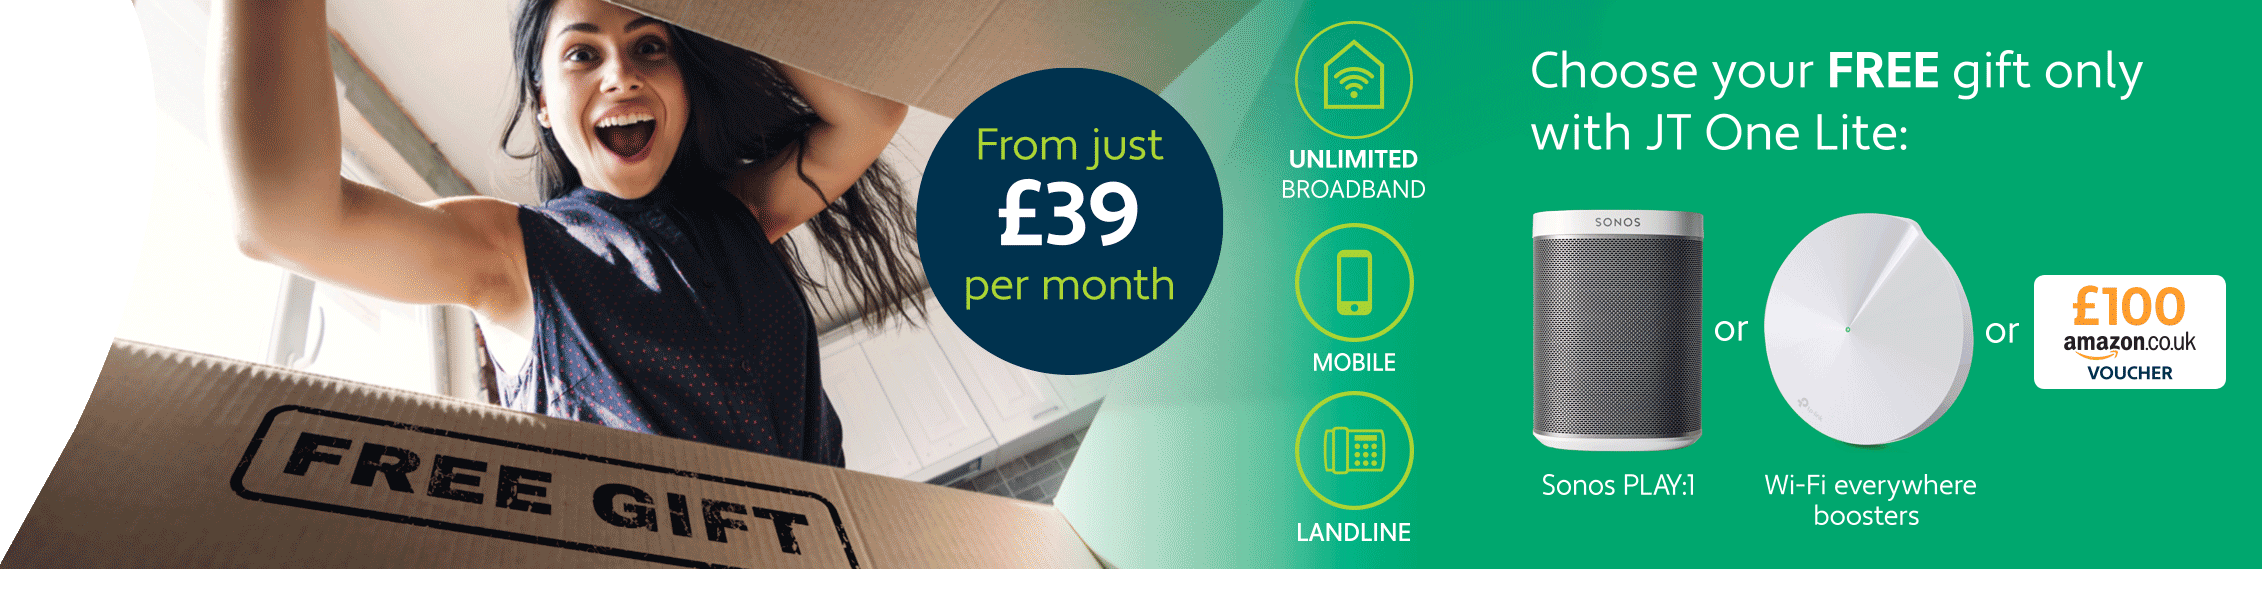 JT One Lite with Unlimited Broadband